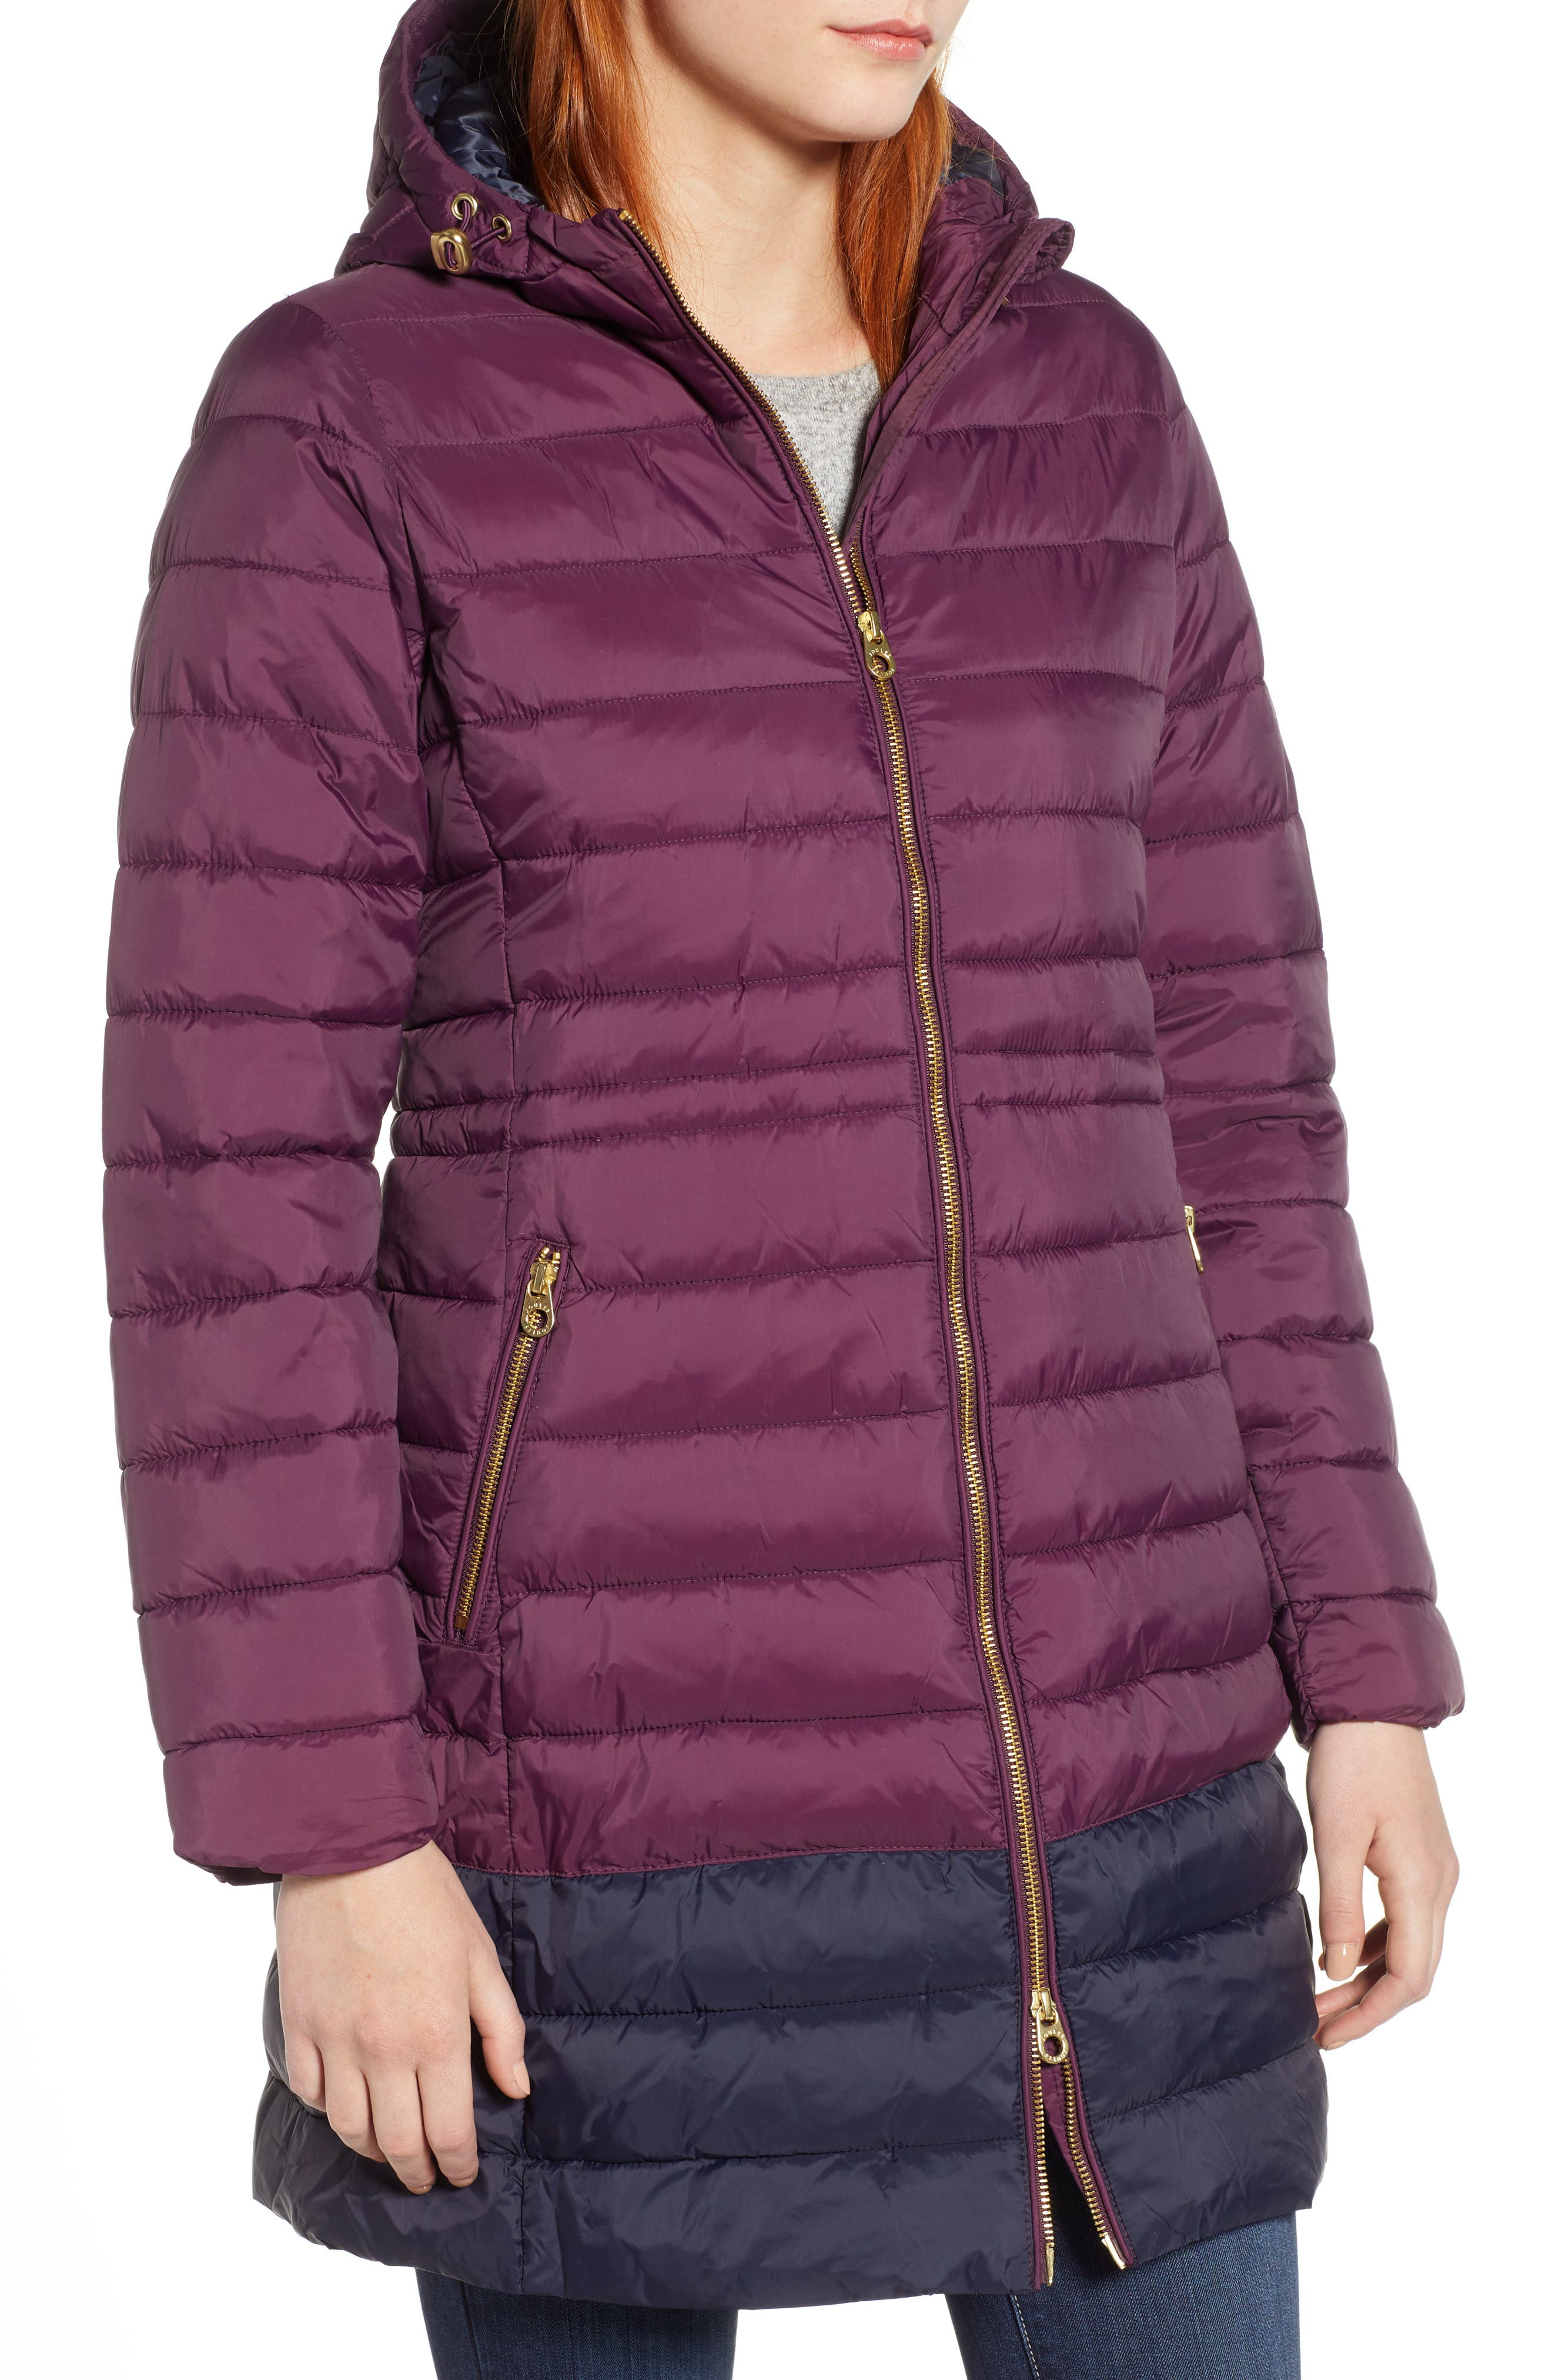 JOULES,                             Heathcote Two-Tone Puffer Jacket,                             Alternate thumbnail 5, color,                             BURGUNDY